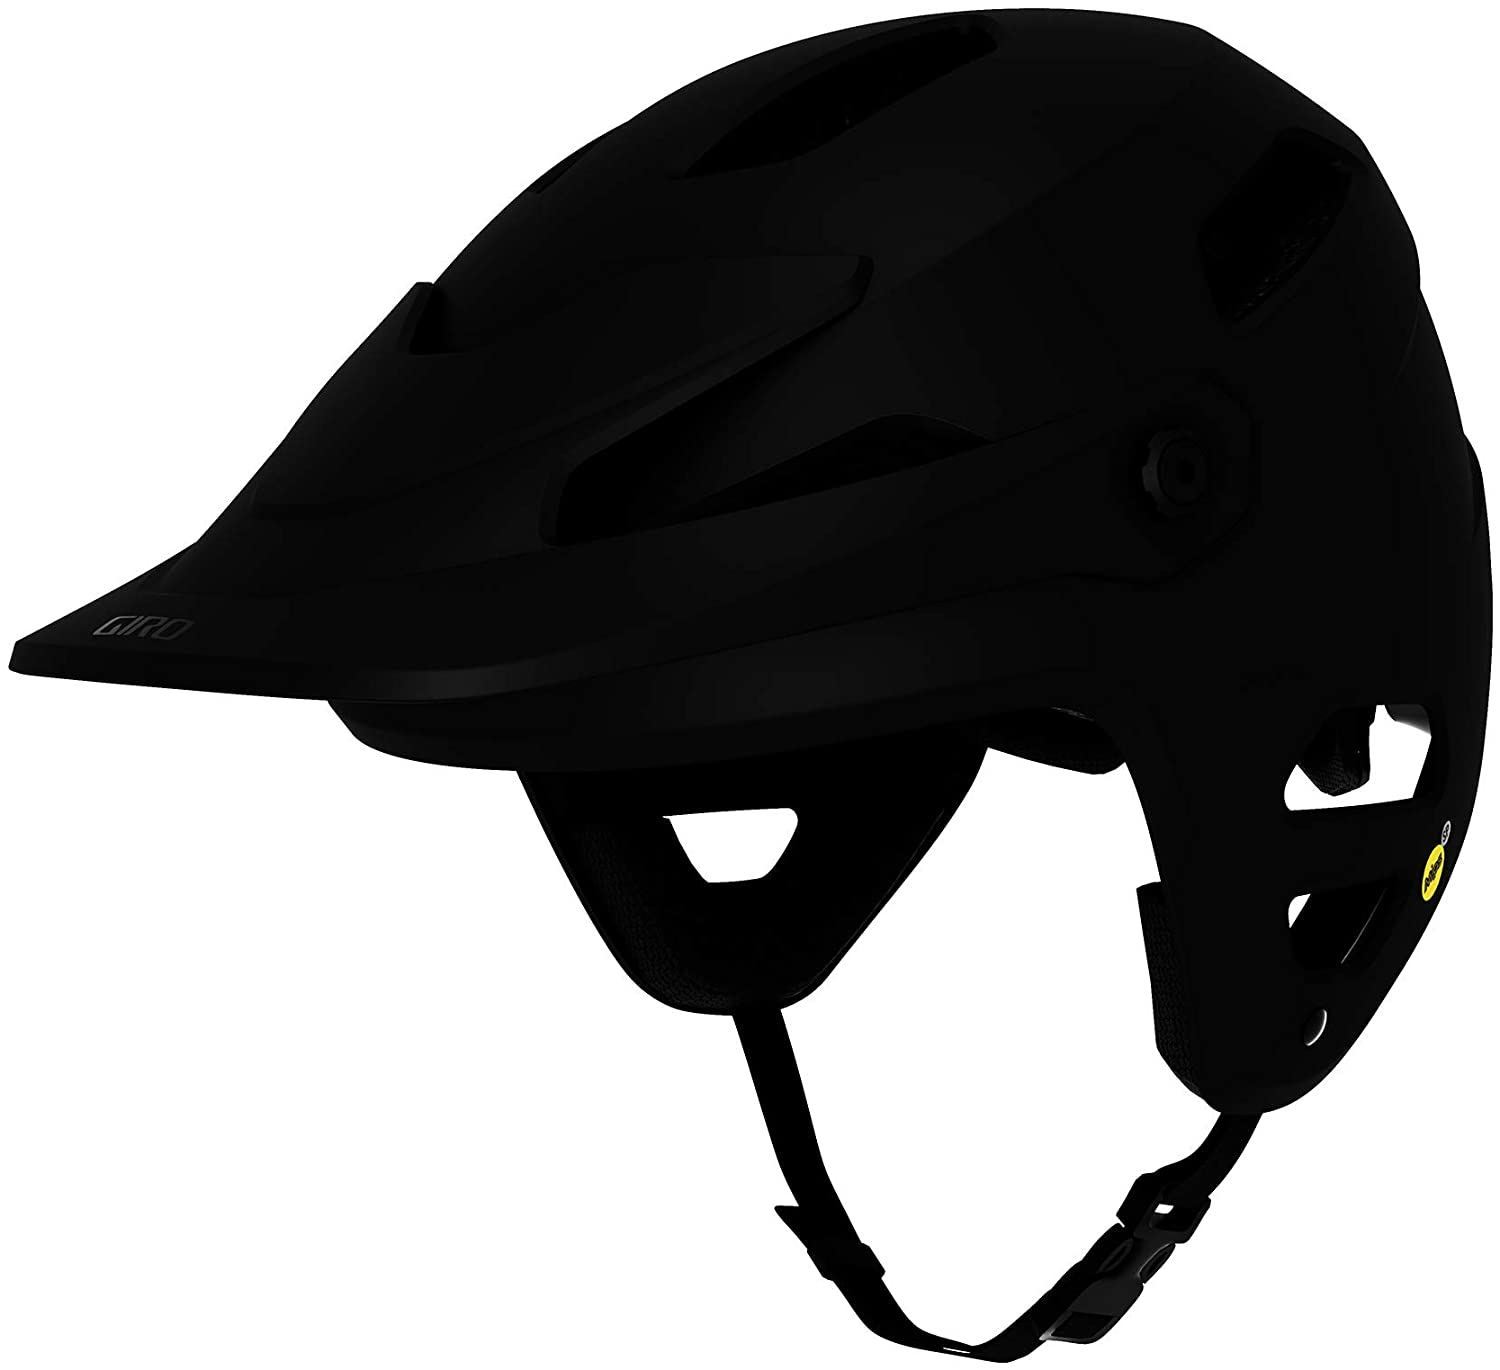 Giro Tyrant Spherical Adult Dirt Bike Helmet